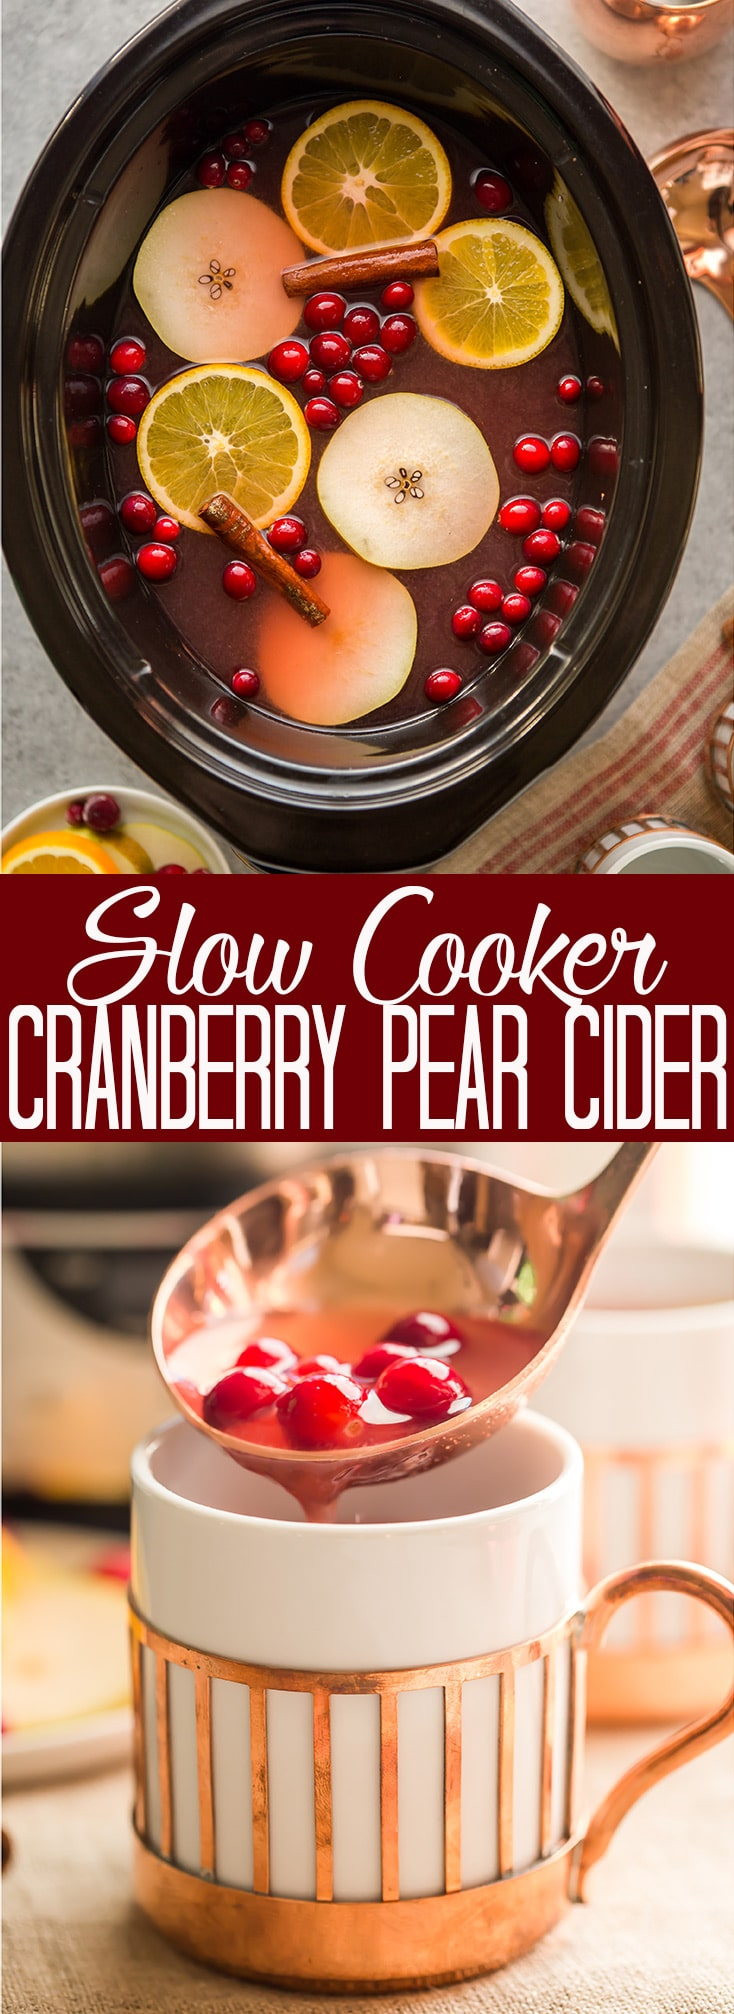 Slow Cooker Cranberry Pear Cider #thanksgivingdrinksalcohol